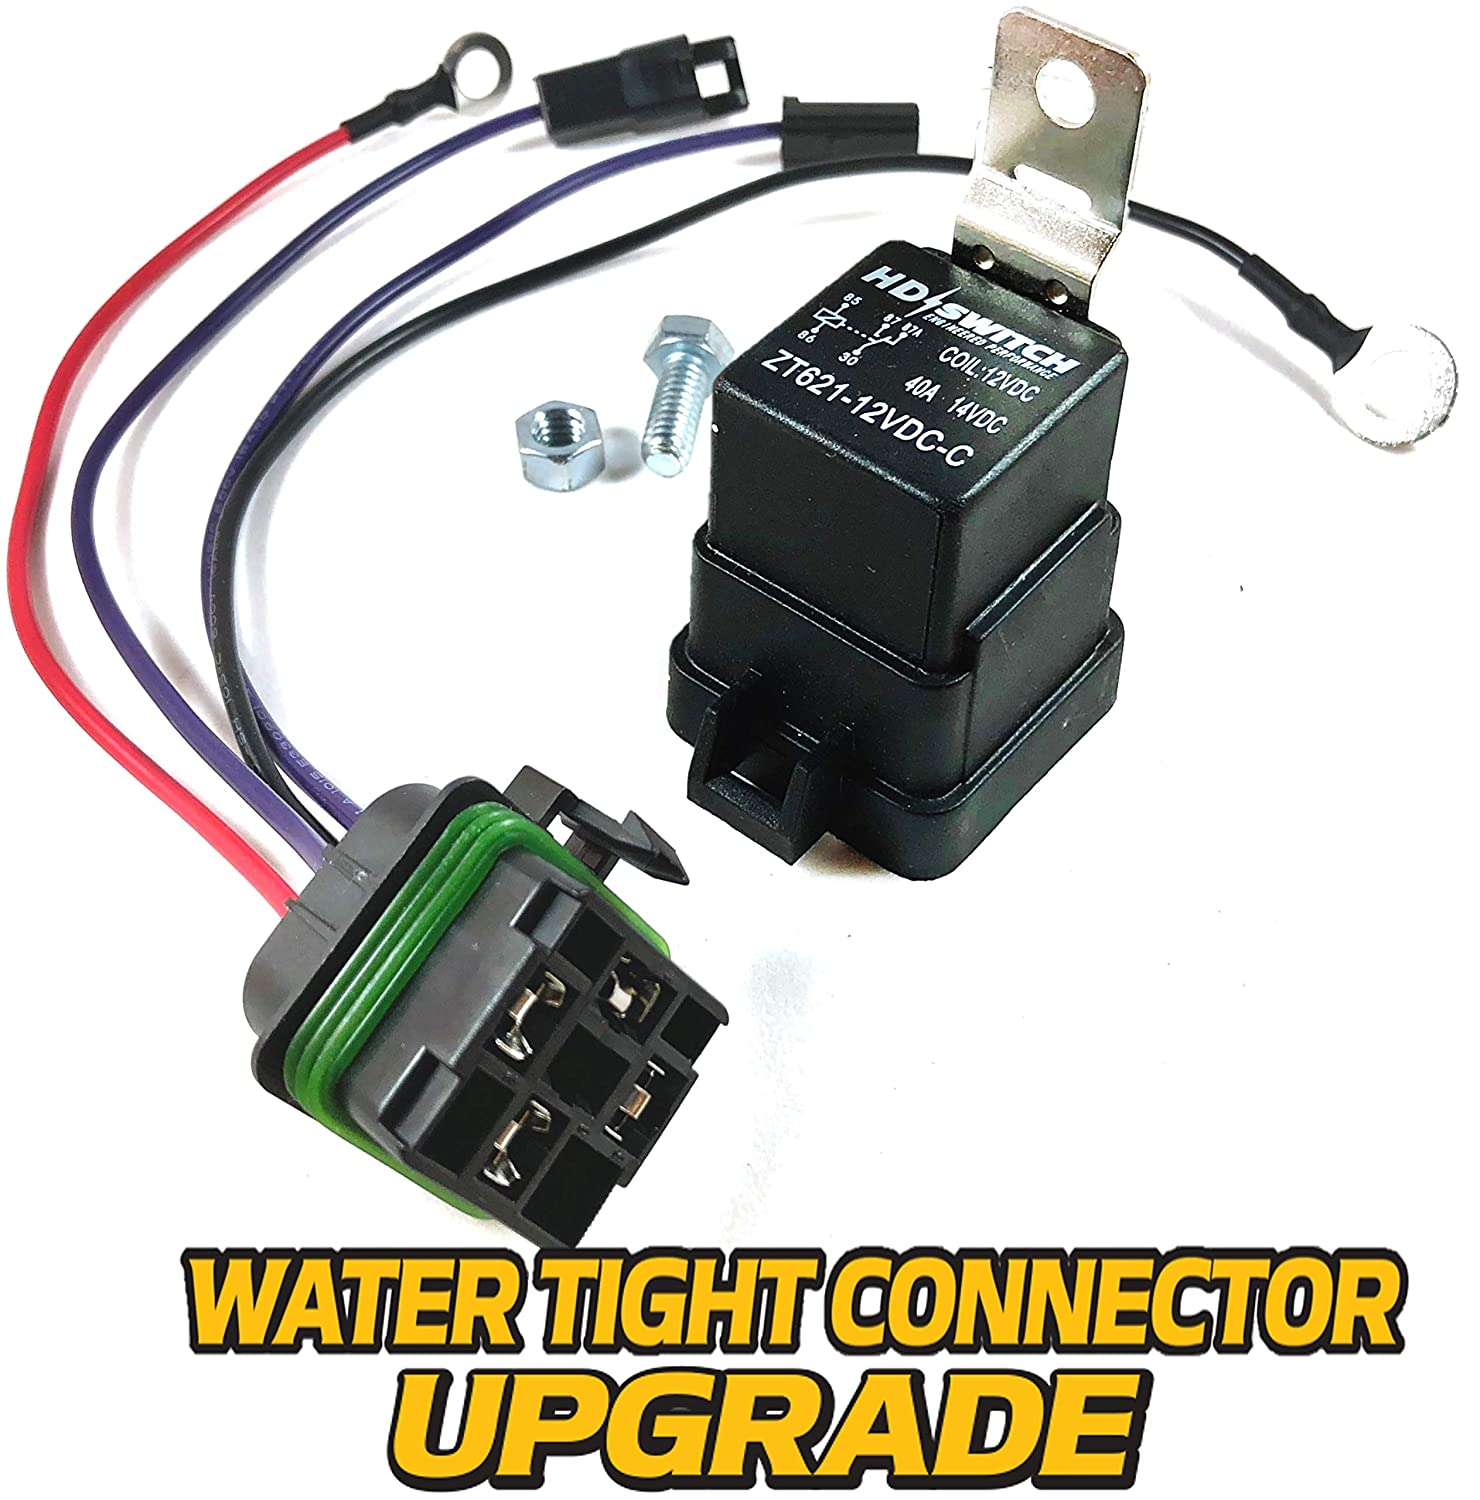 How Do You Wire A Starter Switch For A John Deere Model 320 ... Igniter John Deere F Wiring Diagram on